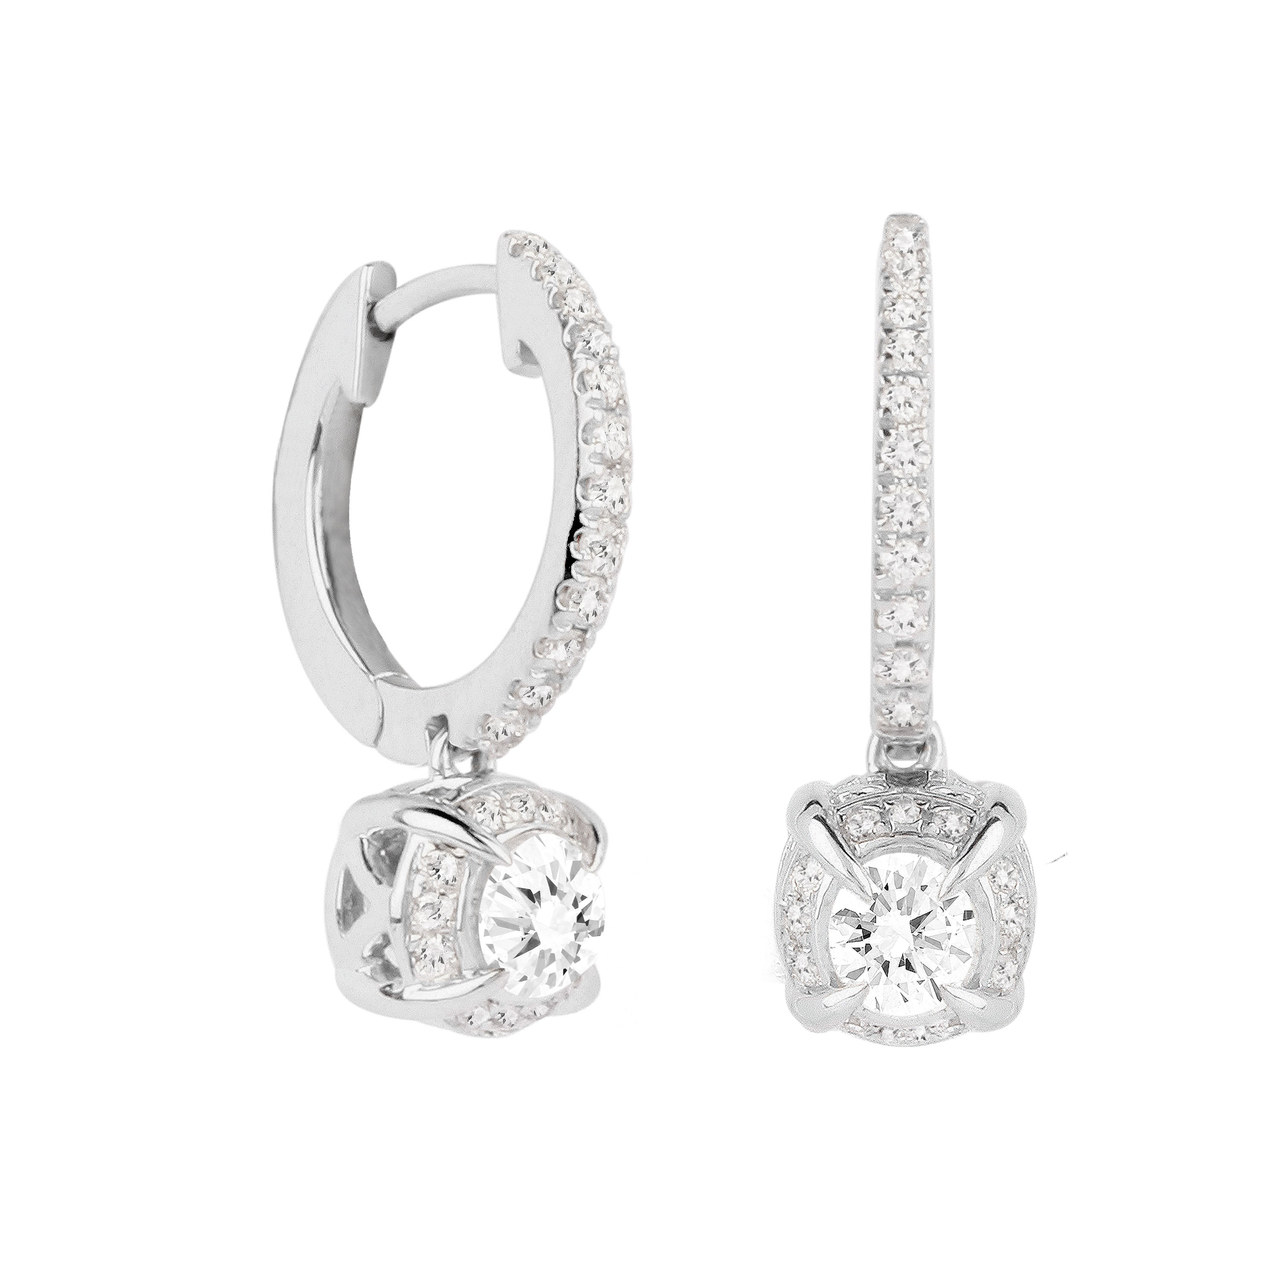 Jenny Packham 18ct White Gold 0.56 Carat Total Weight Brilliant Cut Diamond Earrings